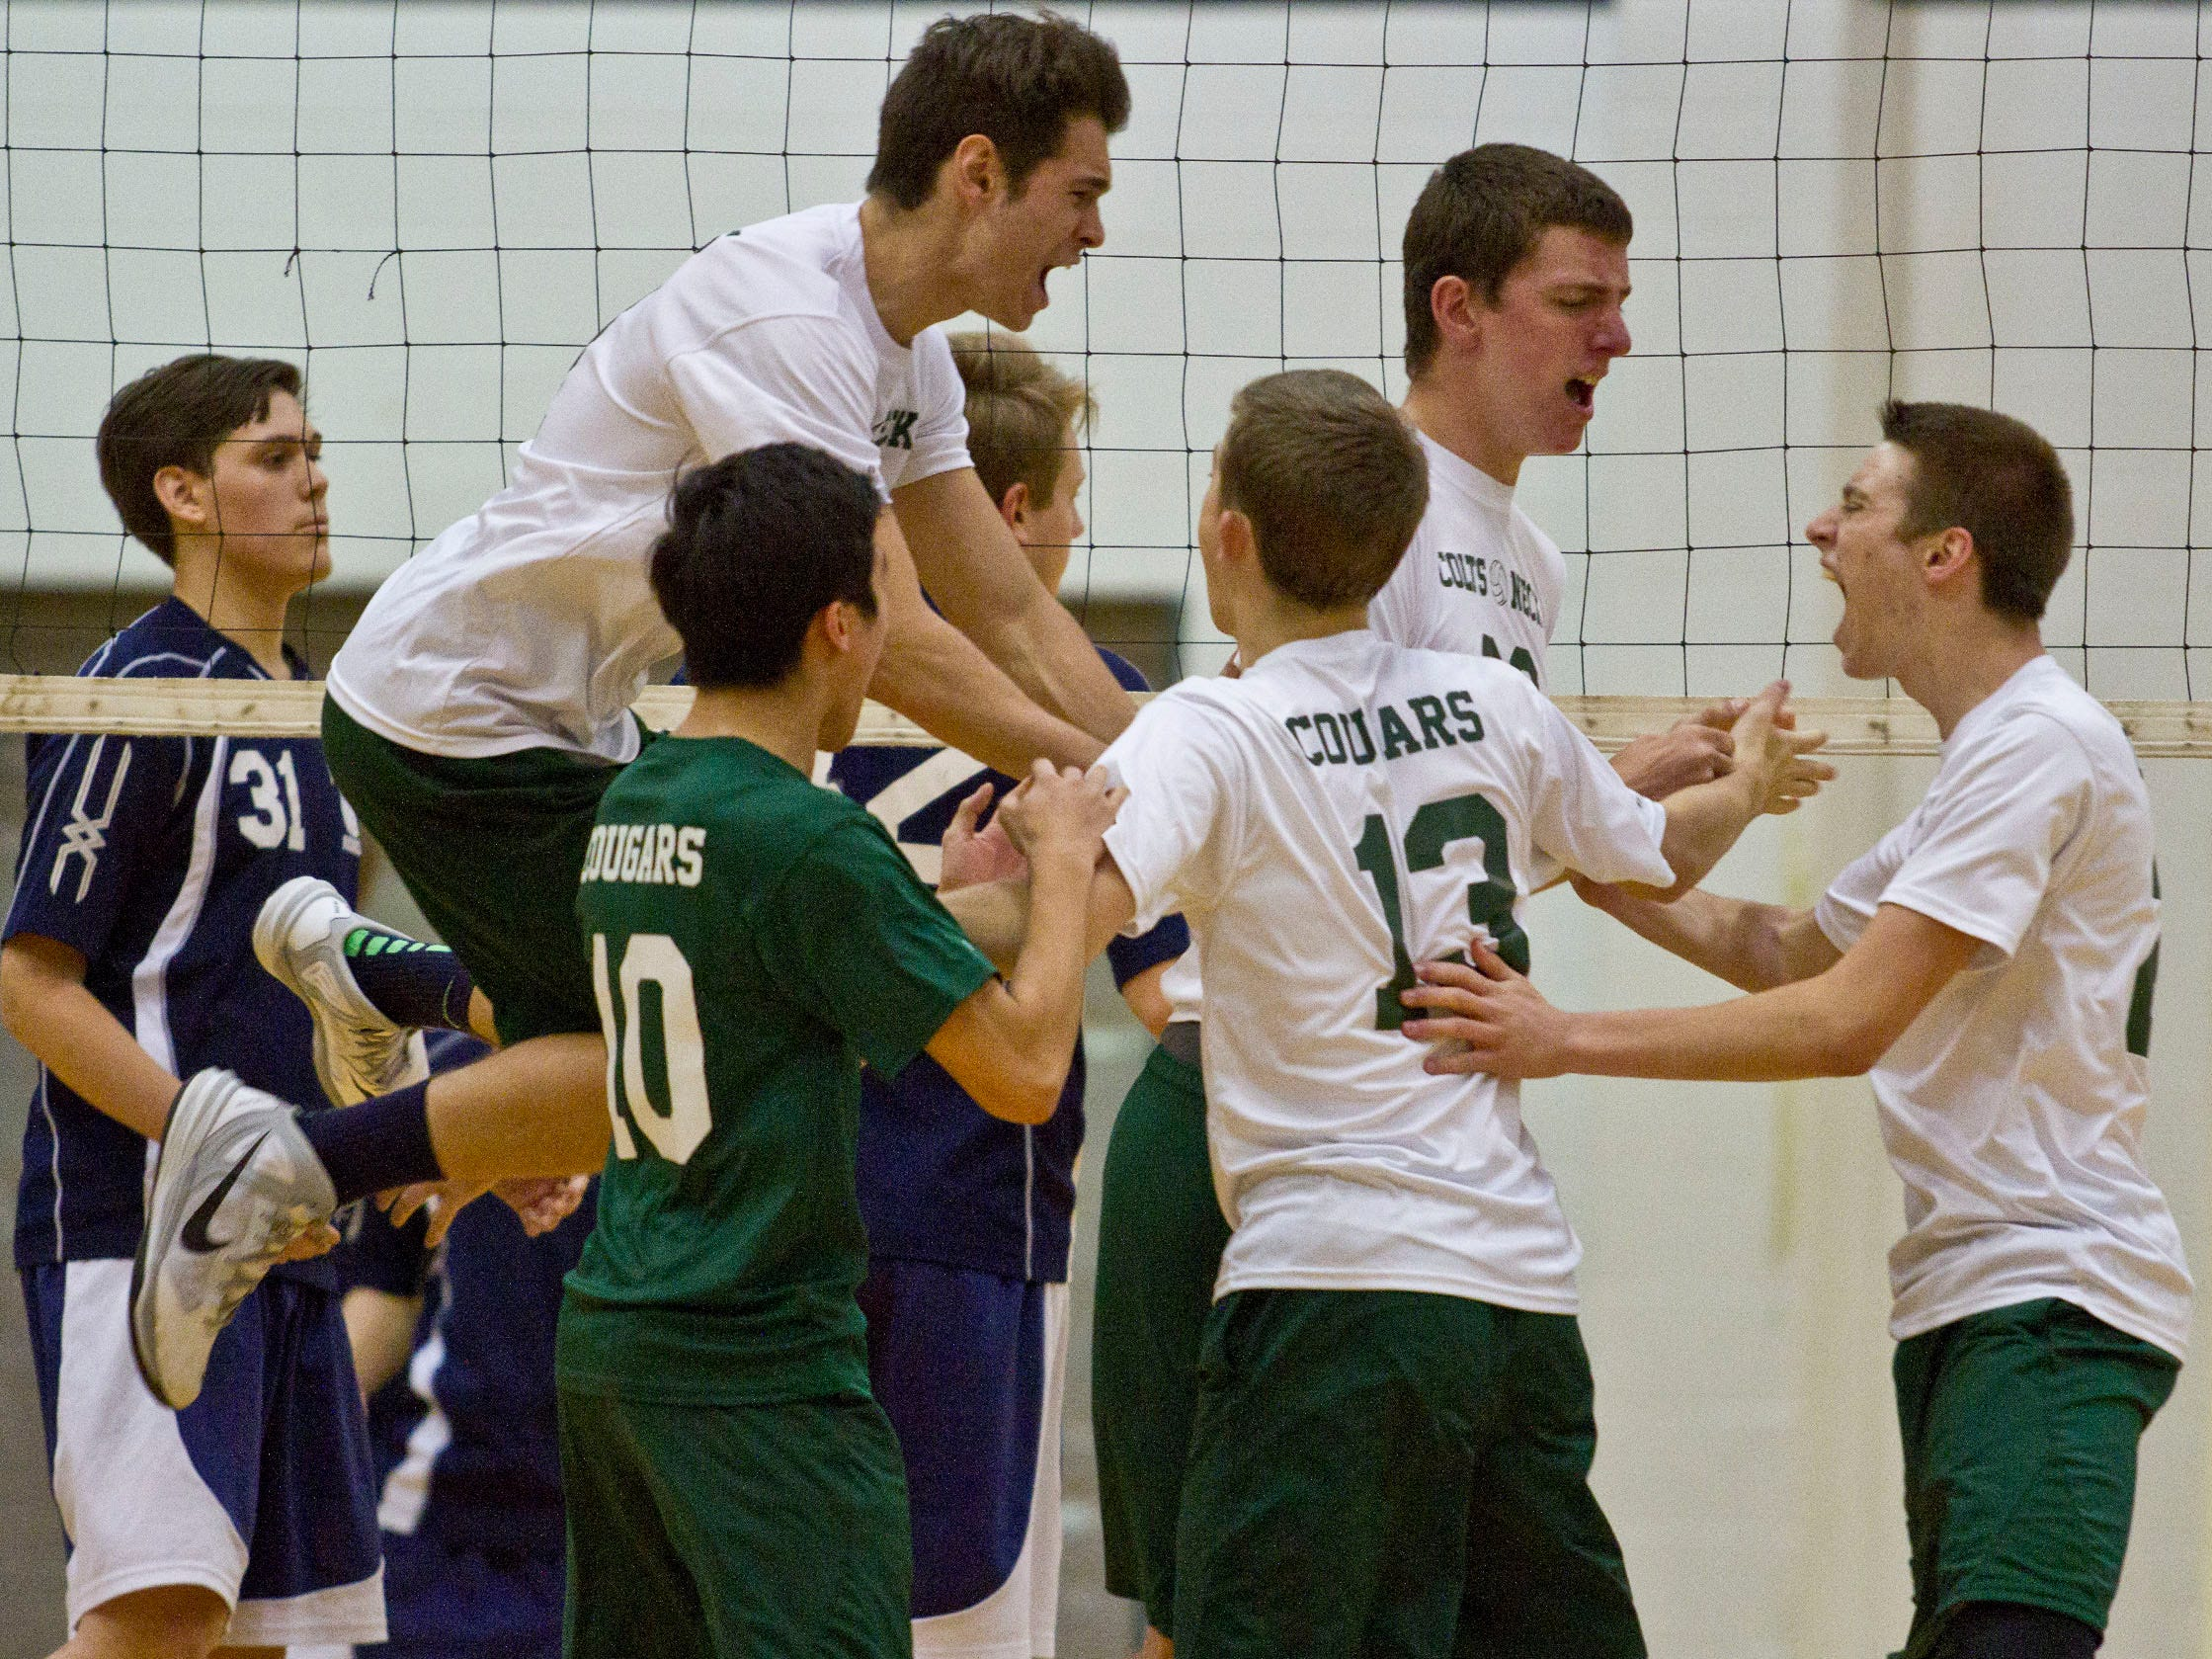 Colts Neck celebrates a point late in the third match. Howell vs Colts Neck volleyball. Colts Neck, NJ Thursday, April 23, 2015 Doug Hood/Staff Photographer @dhoodhood